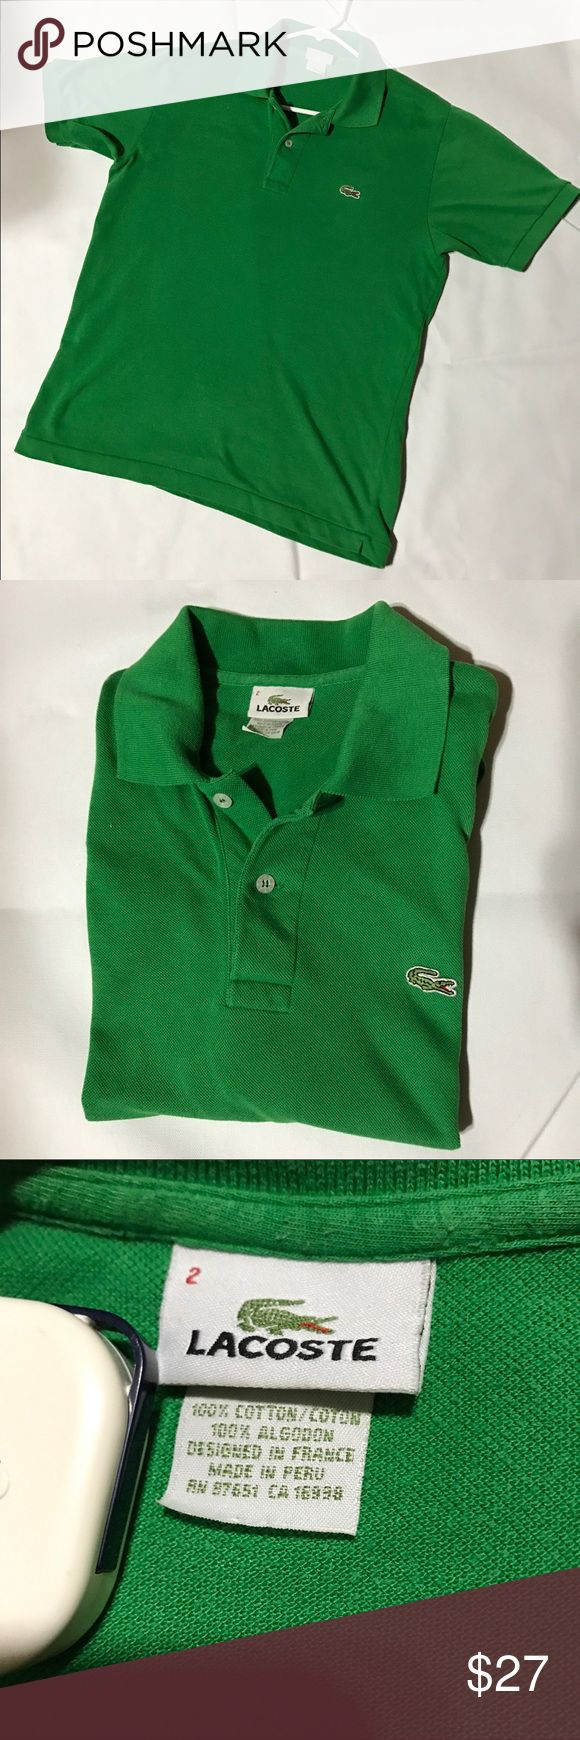 Used Lacoste Polo sz 2 green Up for sale is an Used Lacoste polo shirt size 2, made in Peru, this shirt is still in a very good shape, no holes, no stains whatsoever, comes from smoke and pets free house. Please don't hesitate to contact me if you have any question about the item :) have a nice day Lacoste Shirts Polos